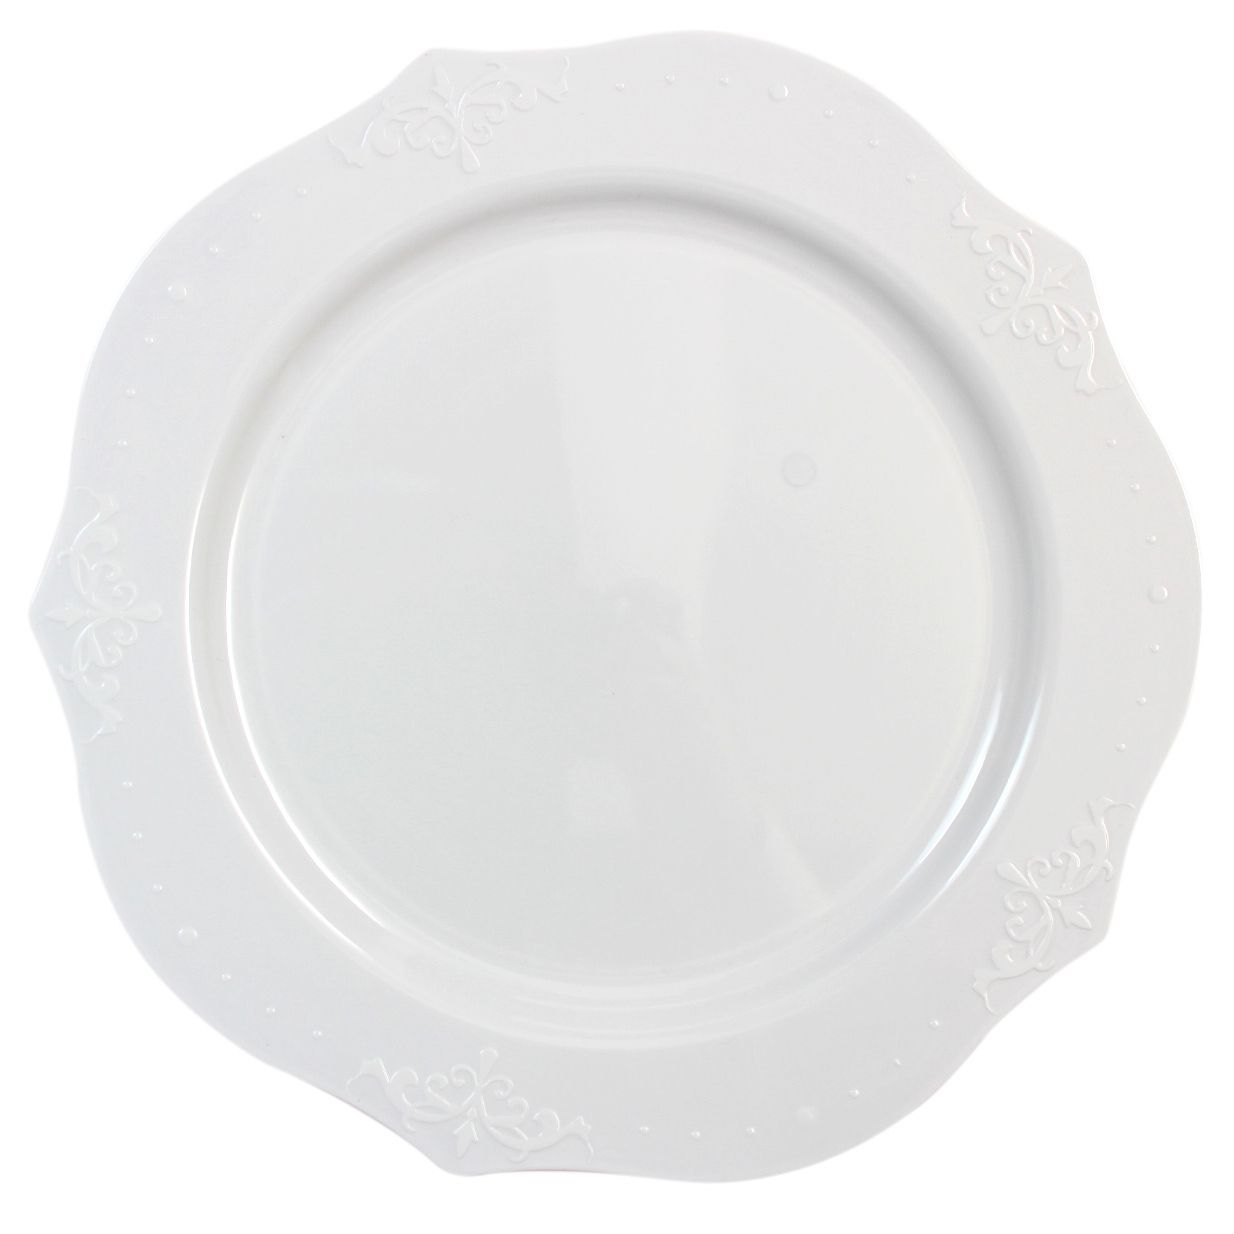 10 White Antique Plastic Dinner Plates With Images Disposable Wedding Plates White Plastic Plates Paper Plates Wedding